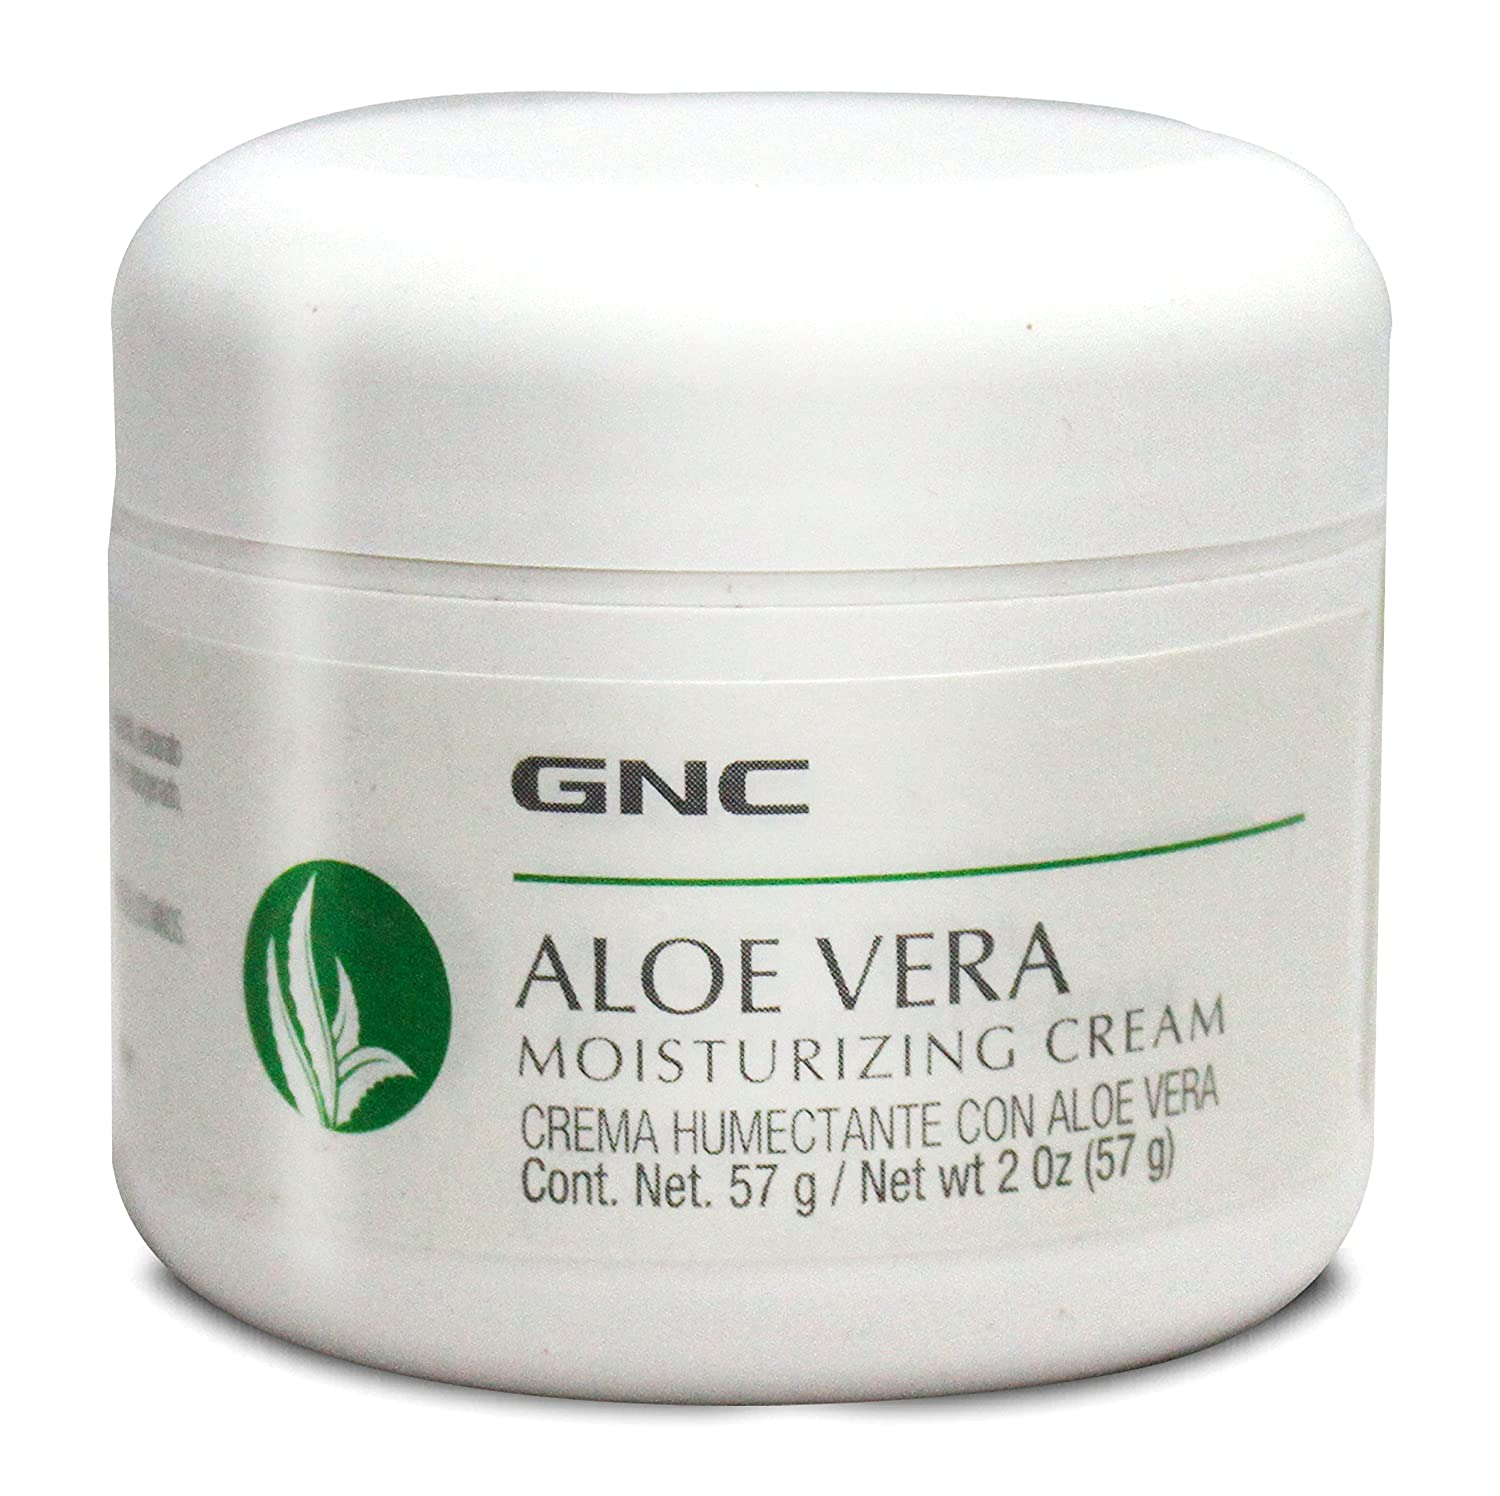 Gnc Aloe Vera Moisturizing Cream 2 Oz by Gnc